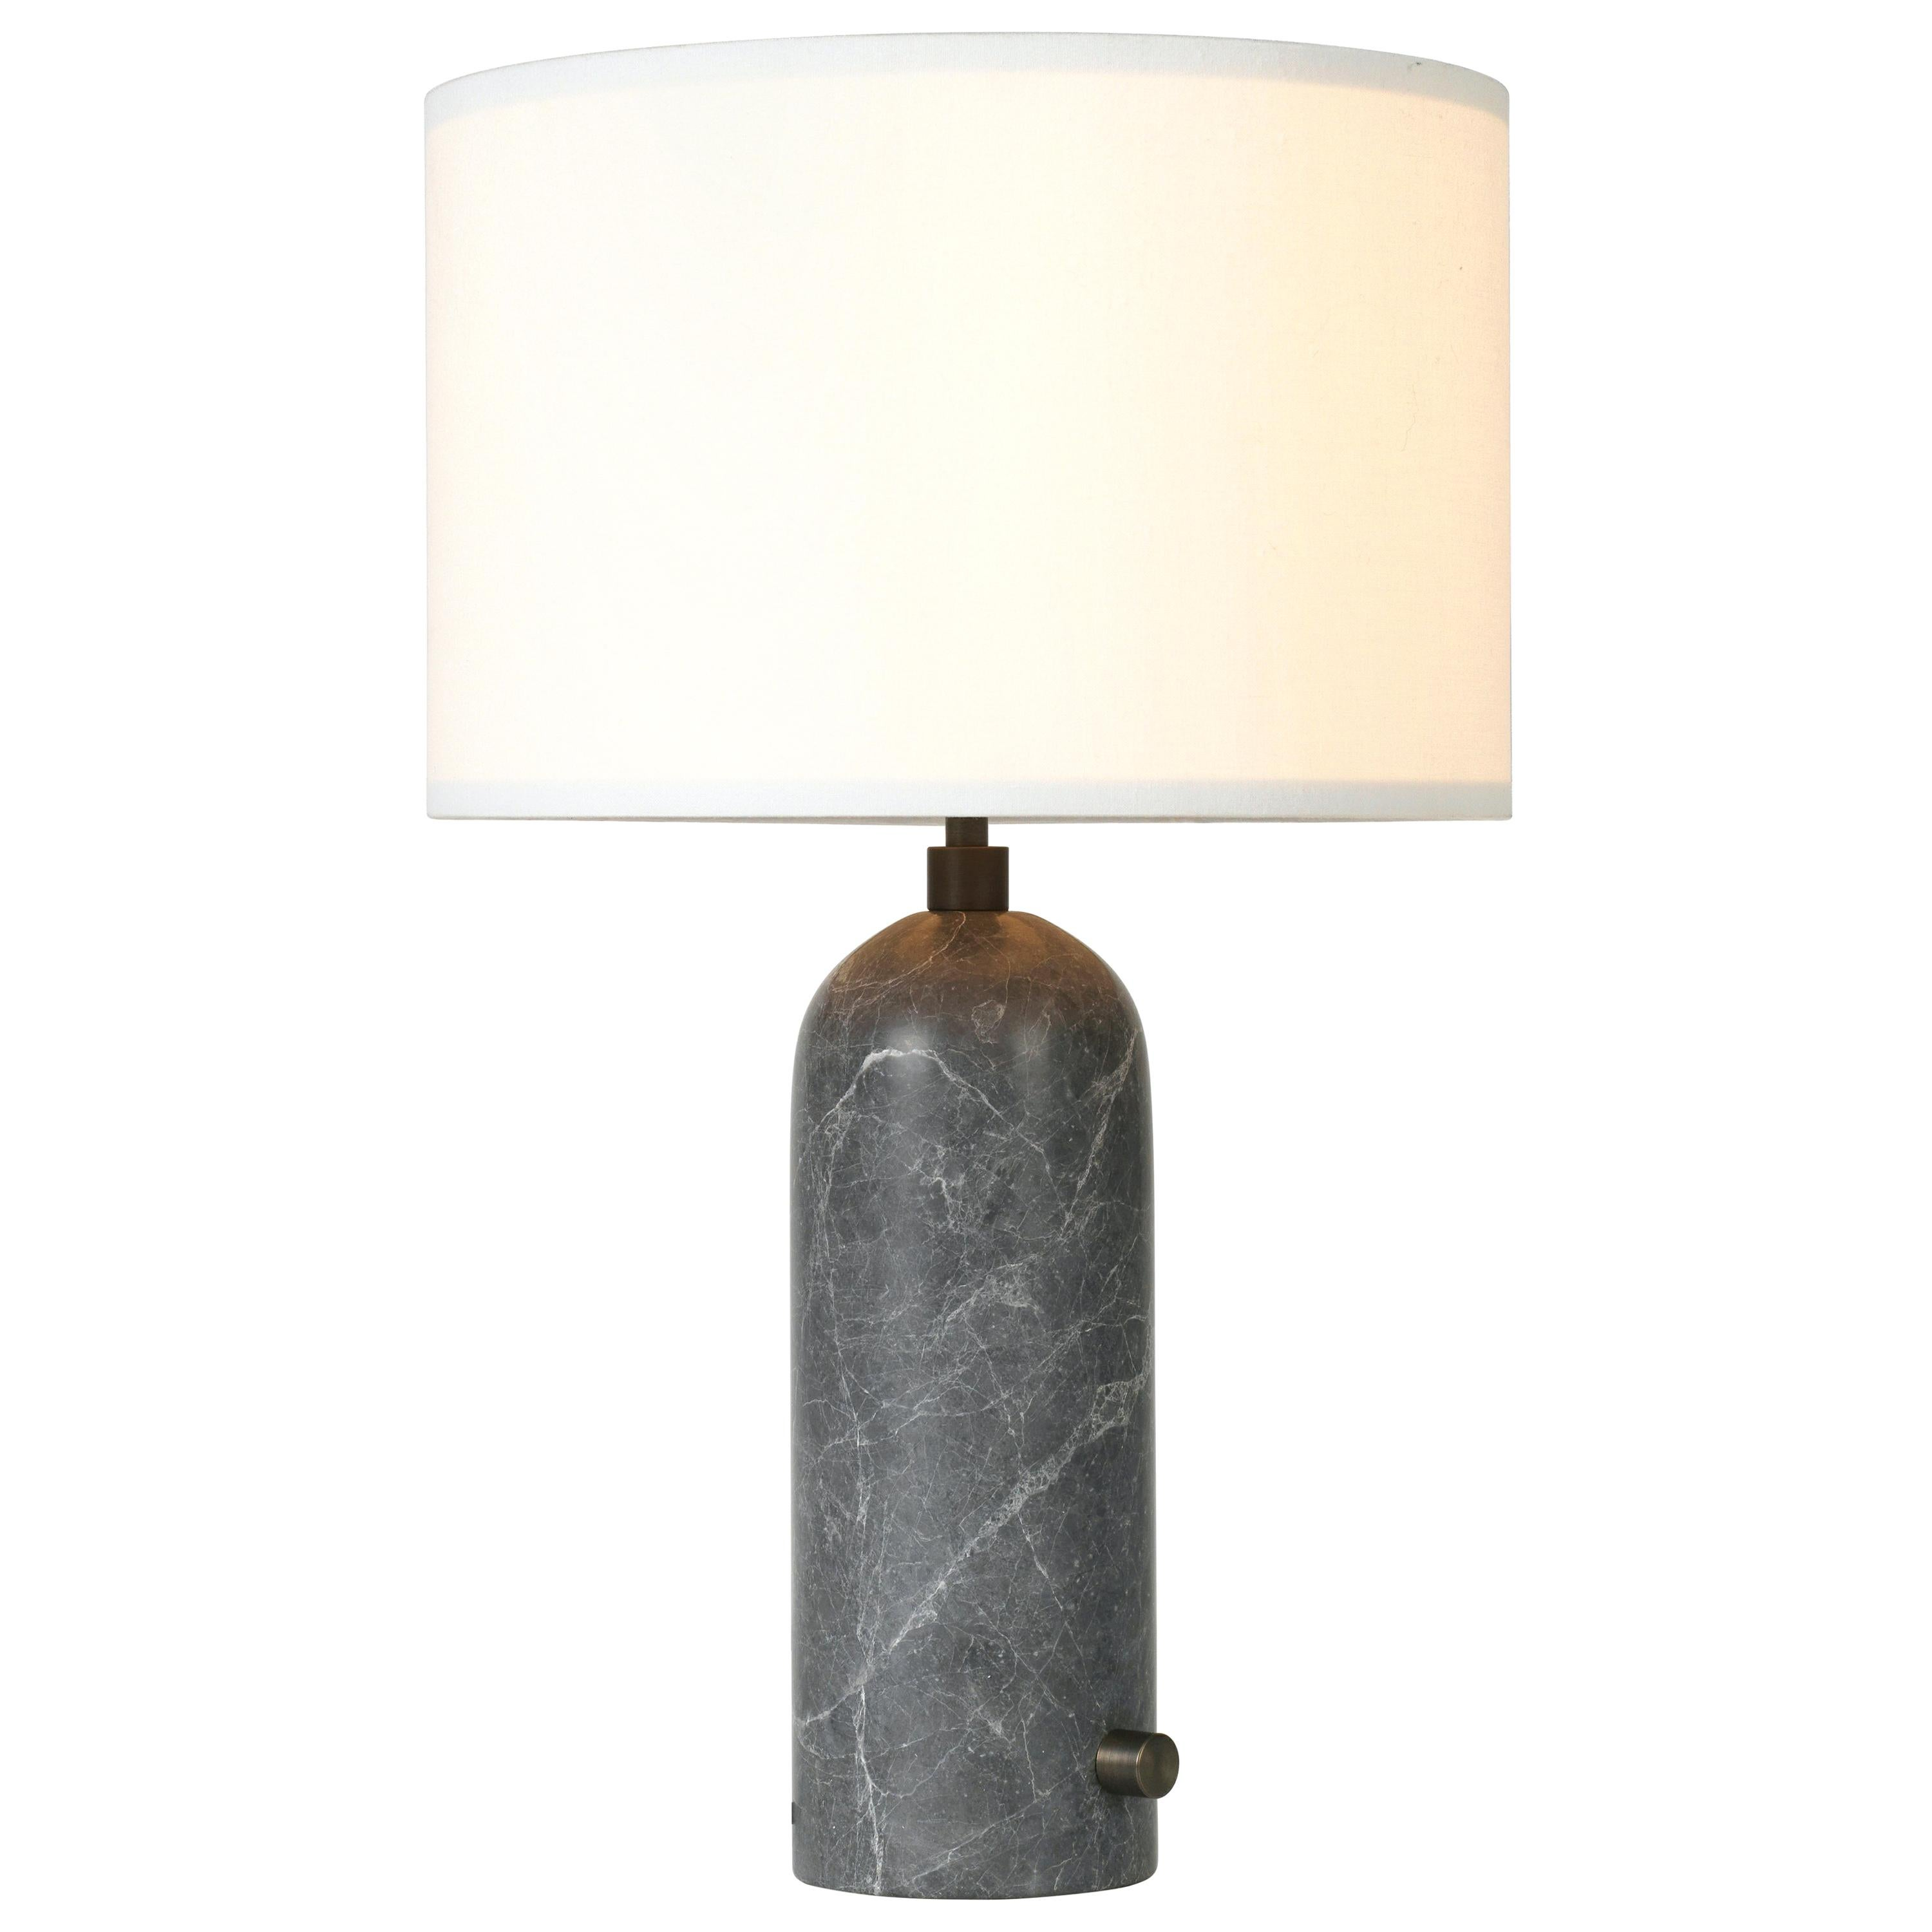 Gray Marble 'Gravity' Table Lamp by Space Copenhagen for Gubi